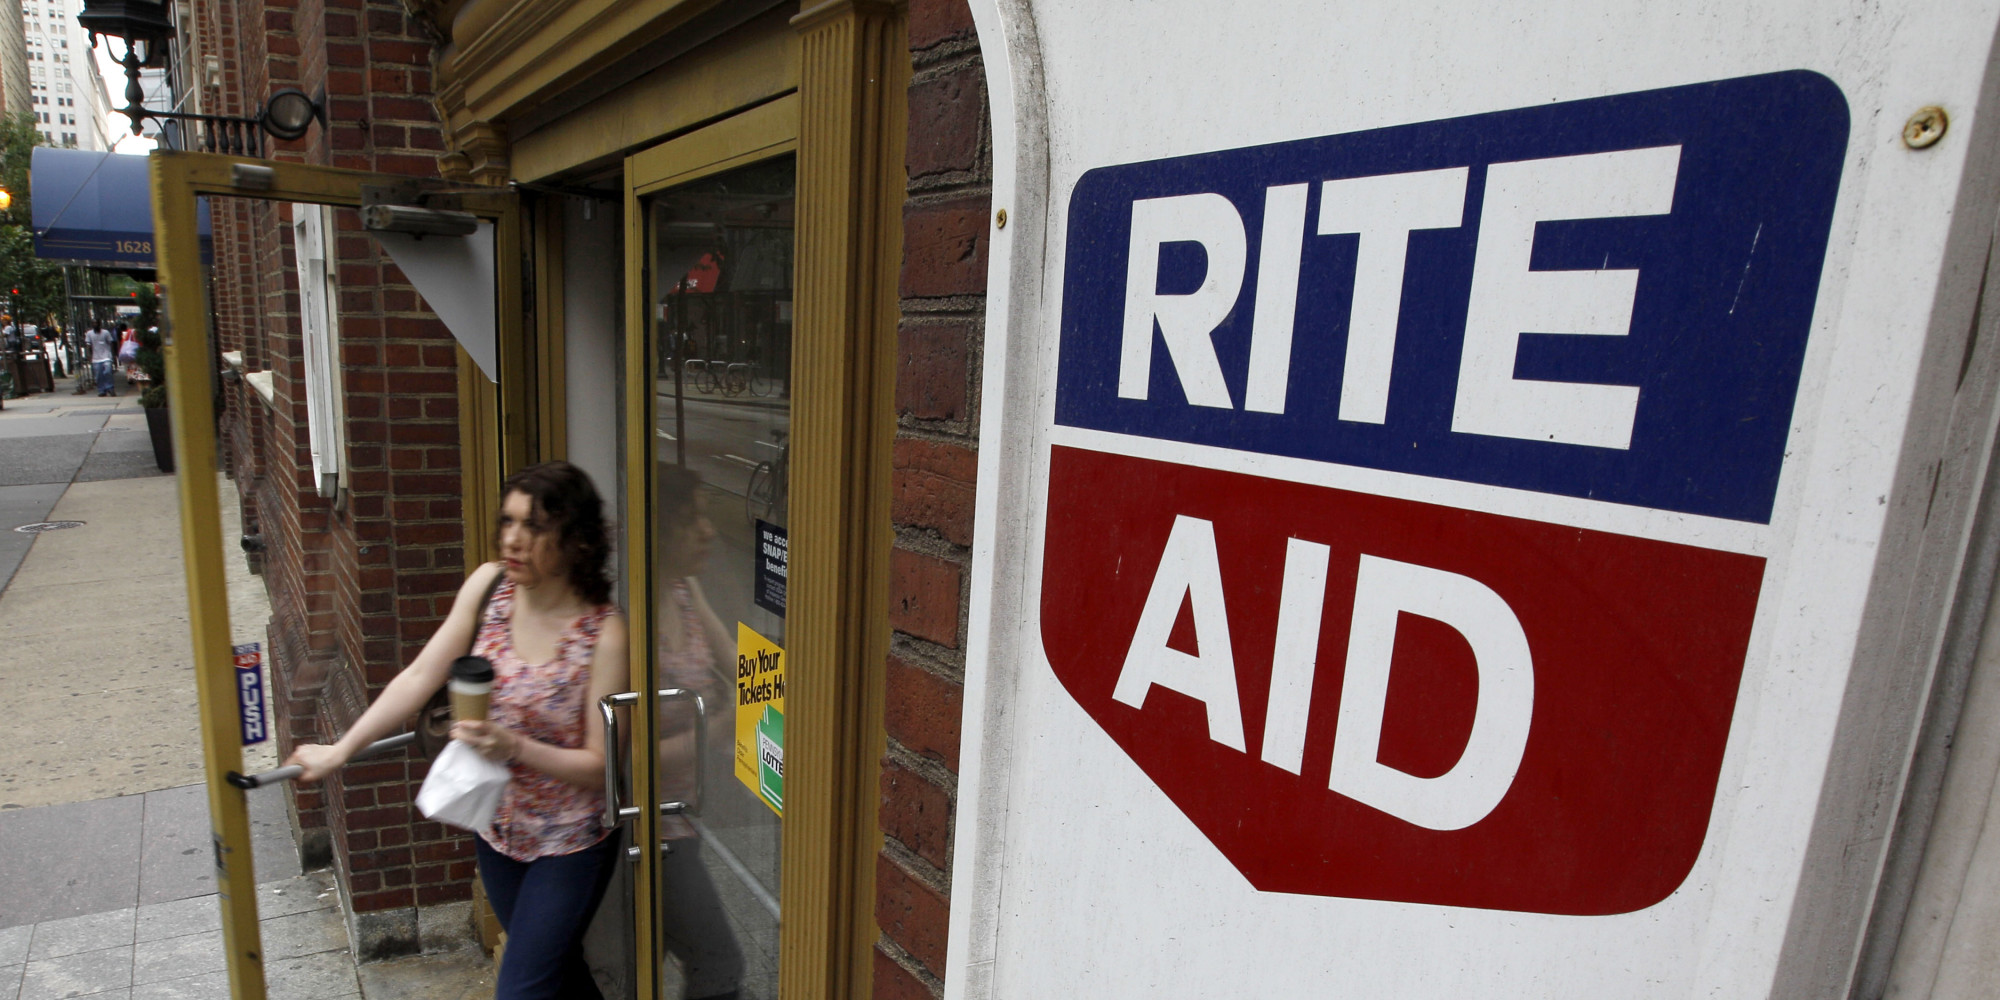 Rite Aid Steps Up Its Beauty Game With Premium Makeup Brands